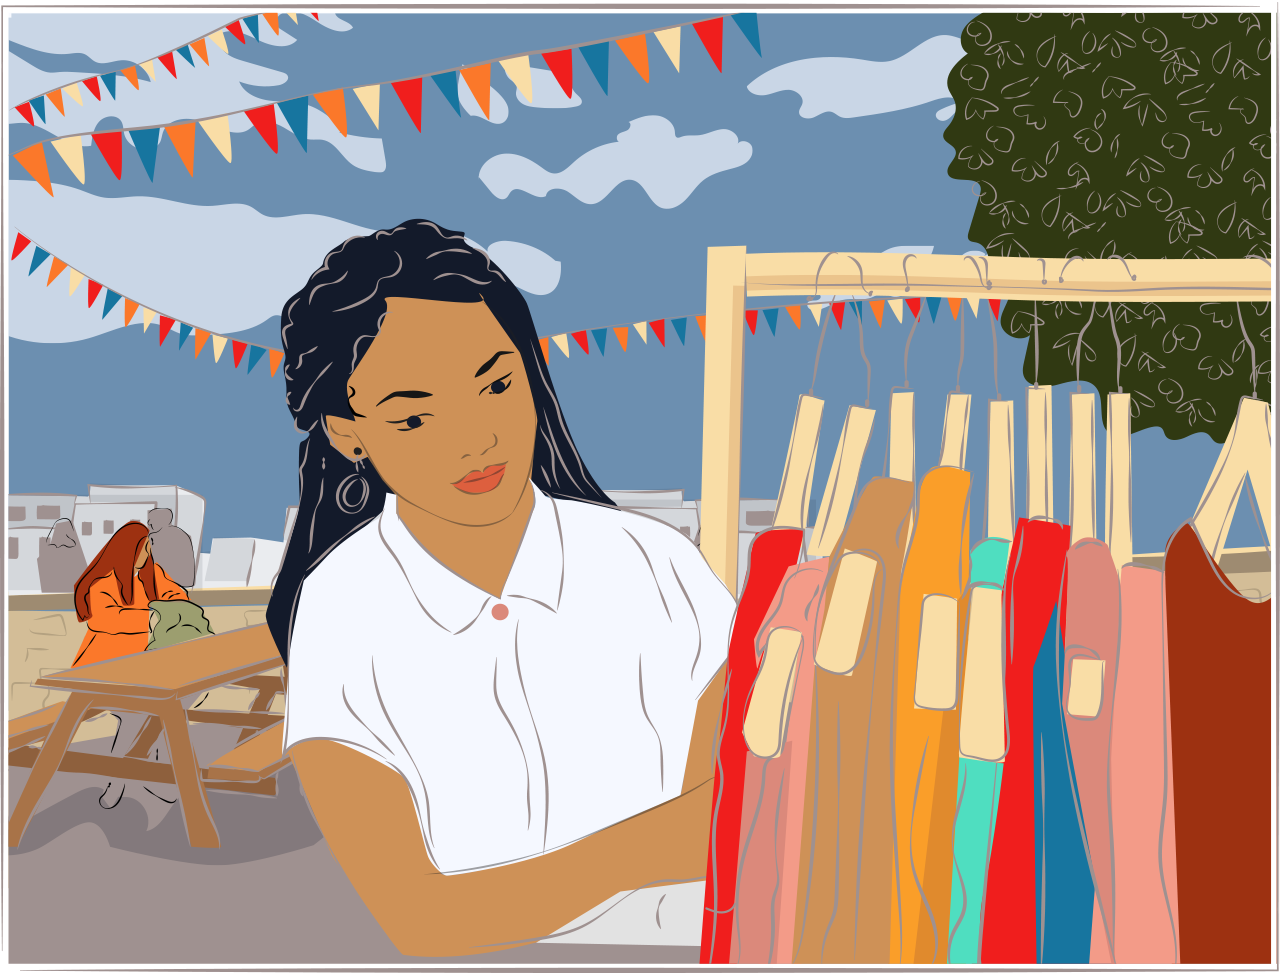 Illustration of a woman browsing in a market